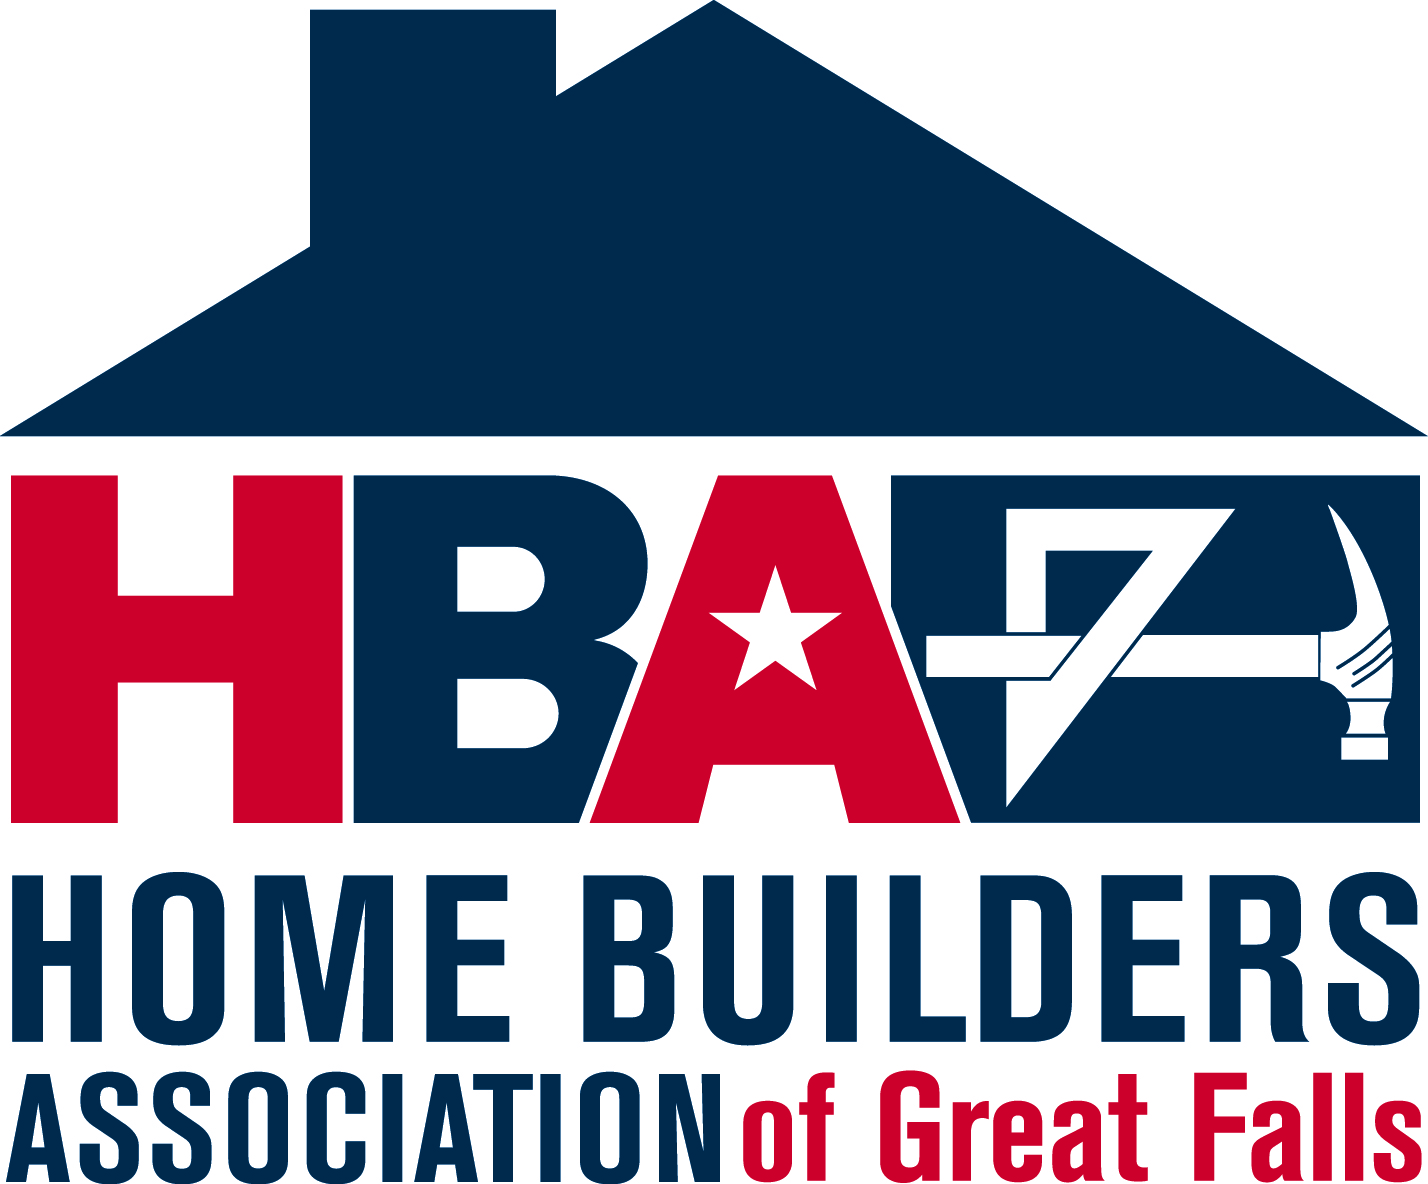 Home Builders Association of Great Falls